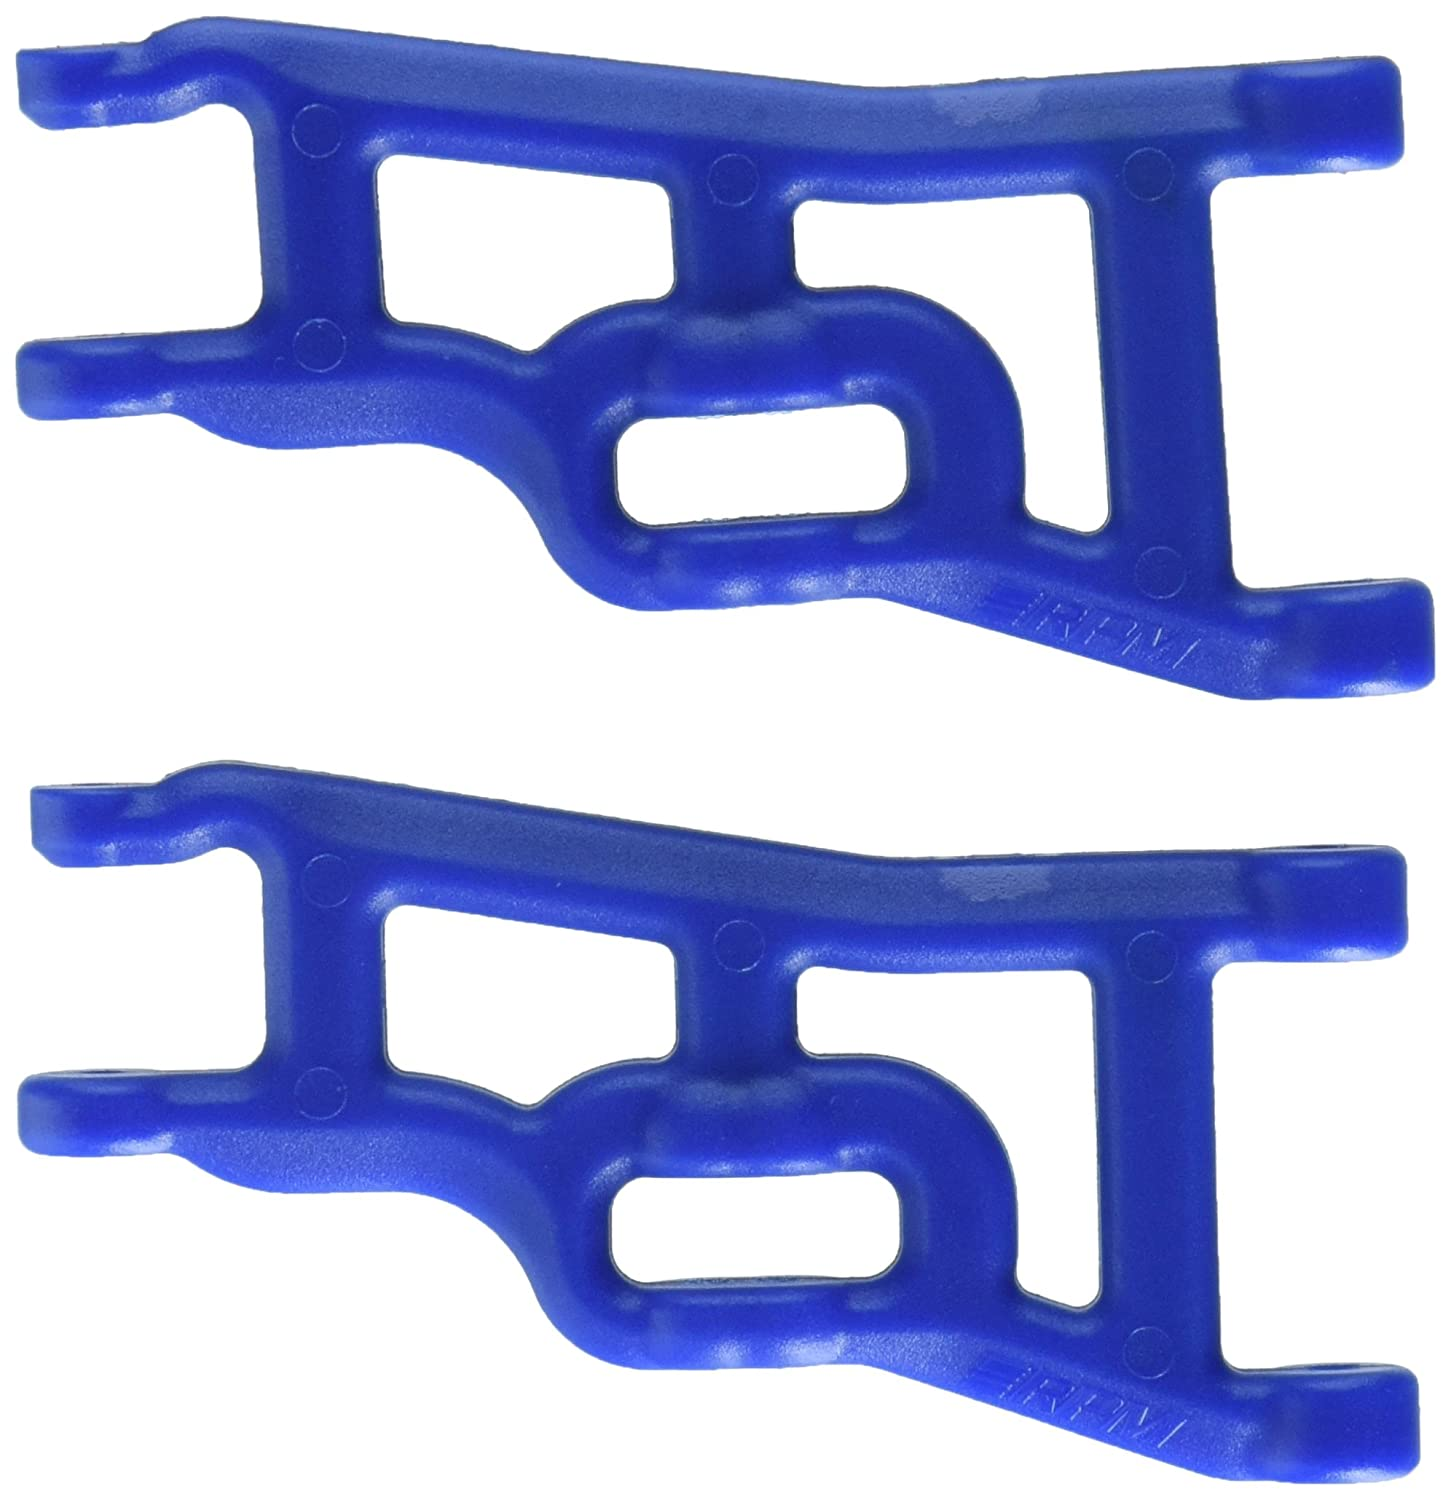 RPM RPM - 80245 Front A-Arms Blue Monster Jam/Rustler/Stampede/Slash (2) (Pack of 34) 81Ndy0mwajL